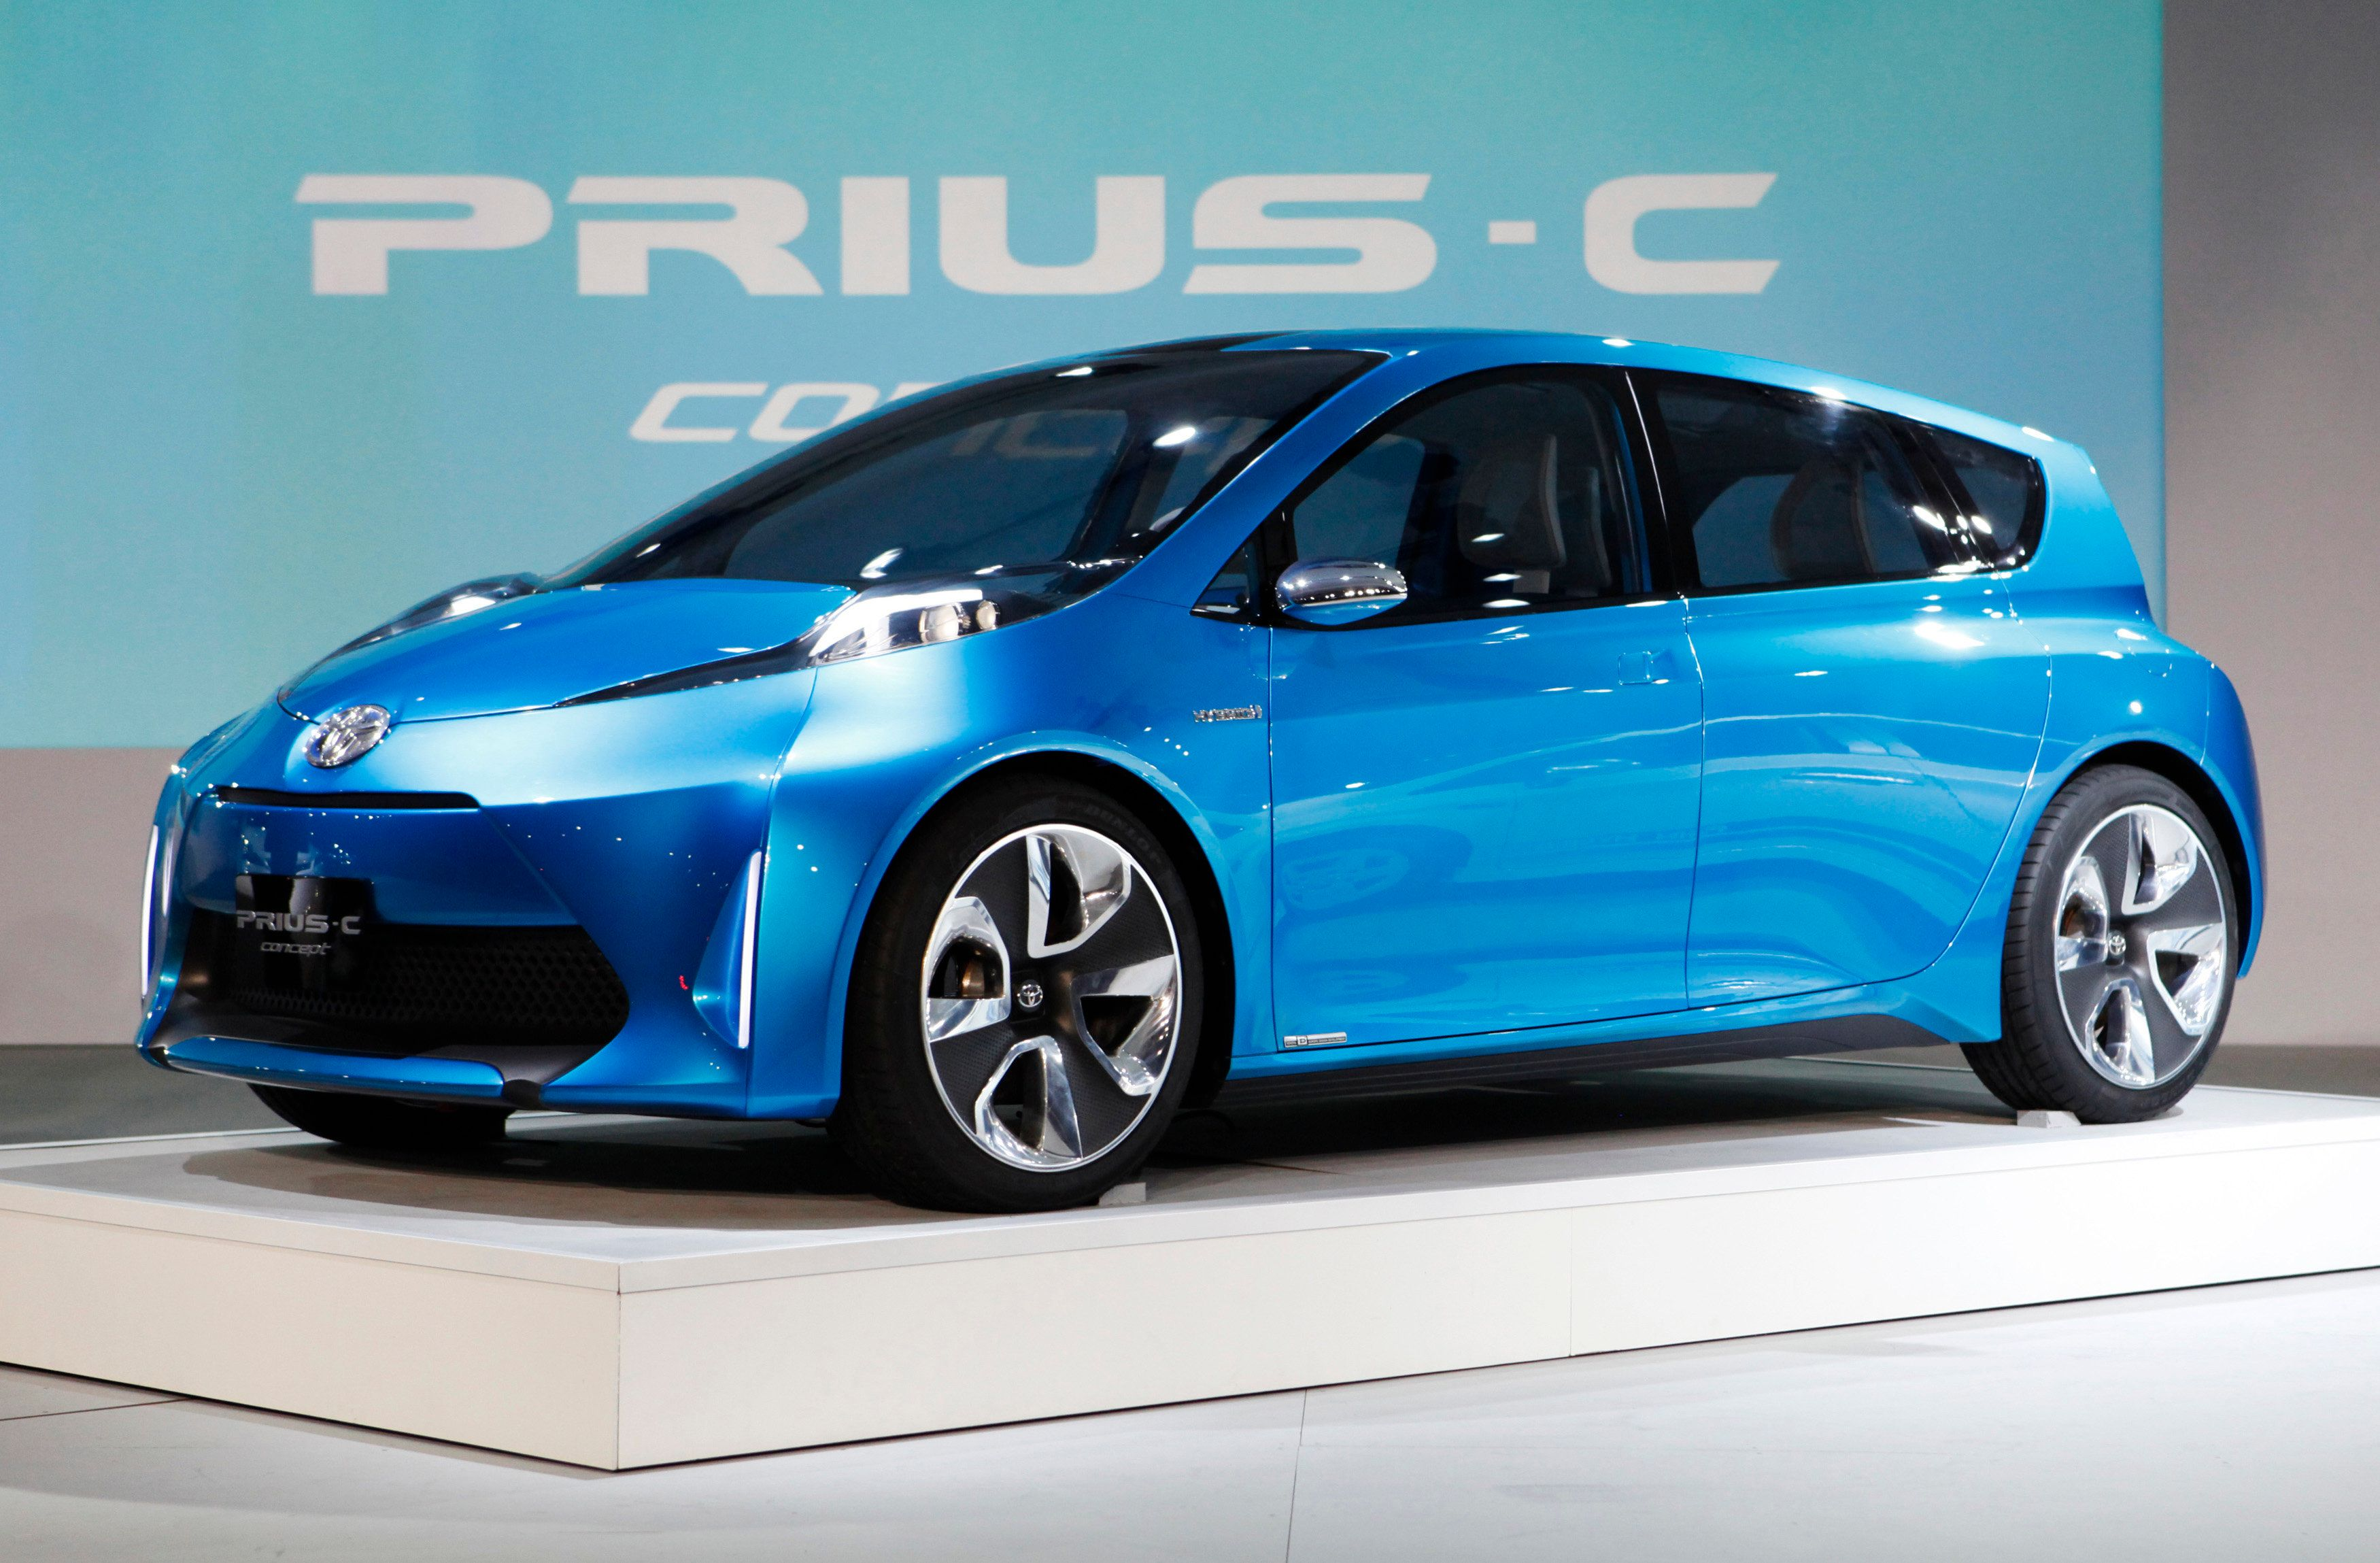 The Toyota Prius-C concept car is revealed during the press days for the North American International Auto show in Detroit, Michigan, January 10, 2011.     REUTERS/Mark Blinch (UNITED STATES - Tags: TRANSPORT BUSINESS)